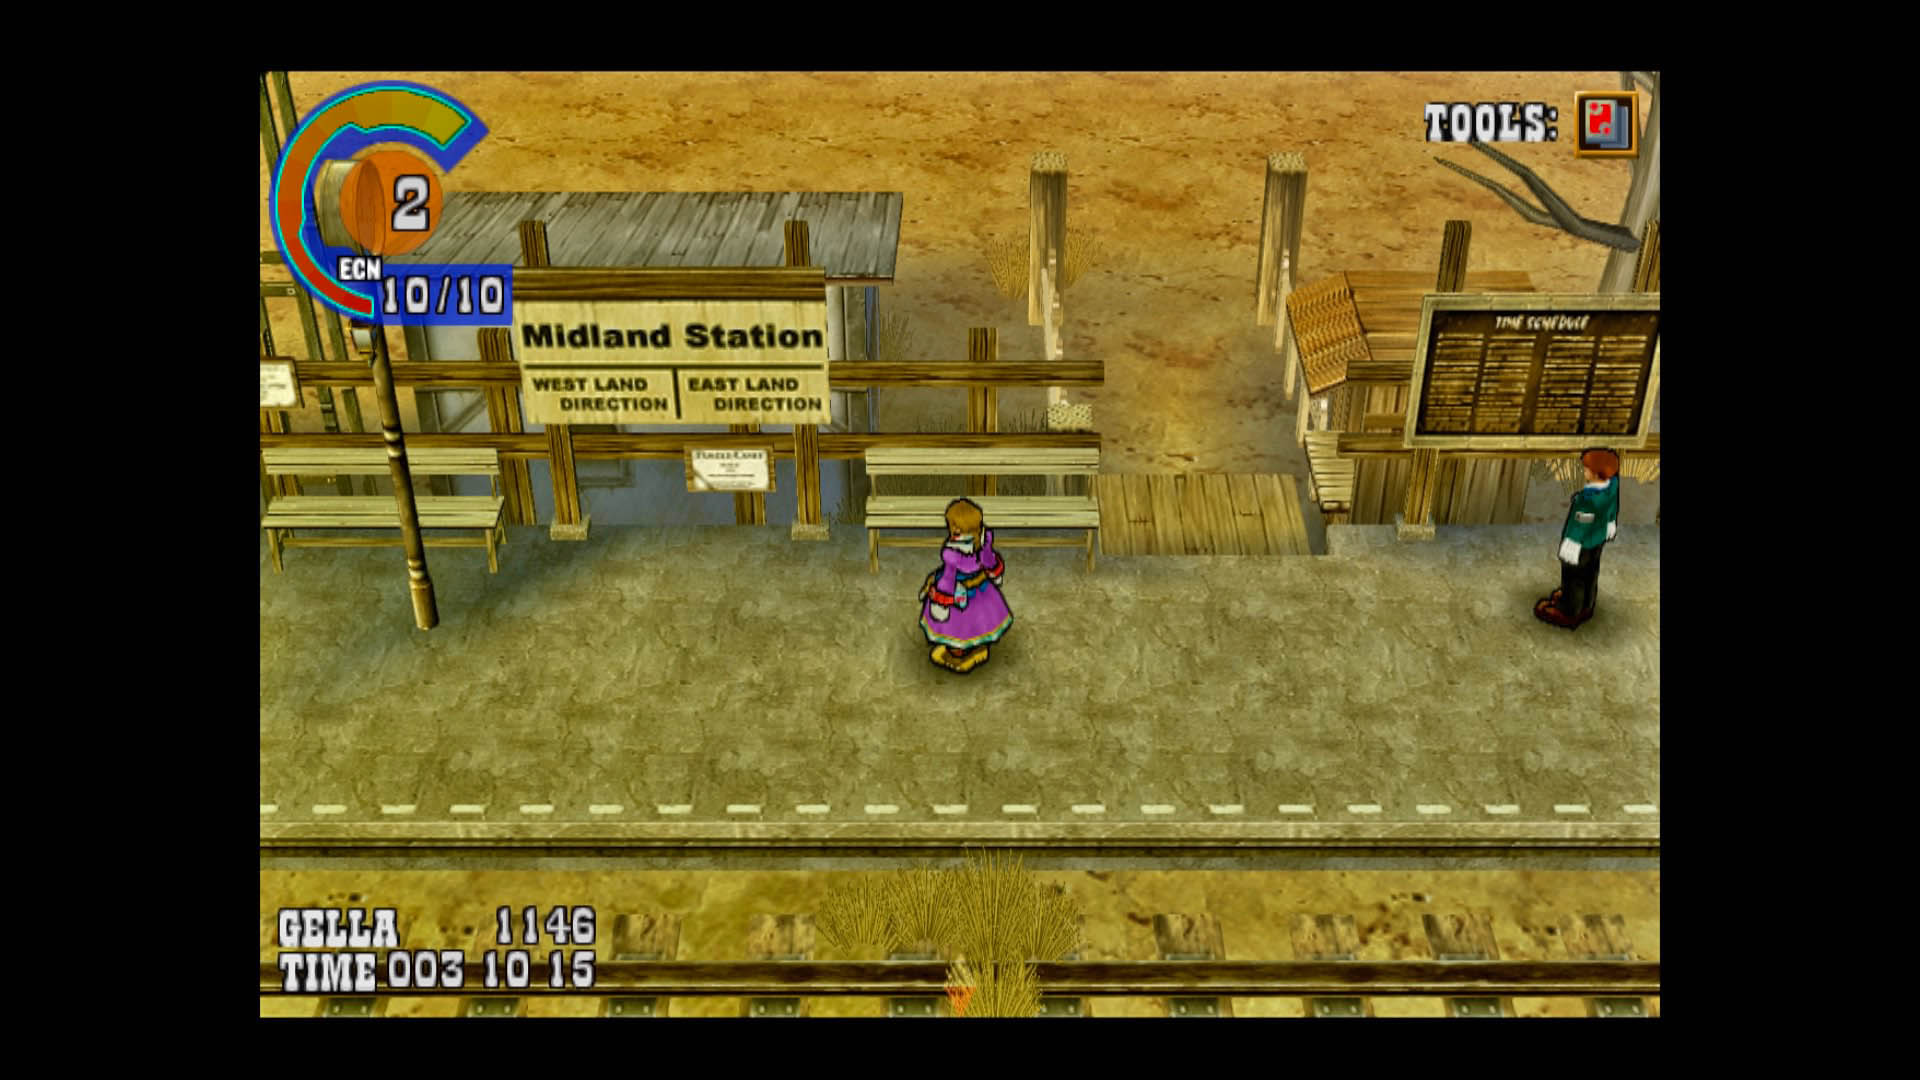 Wild Arms 3 Midland Station